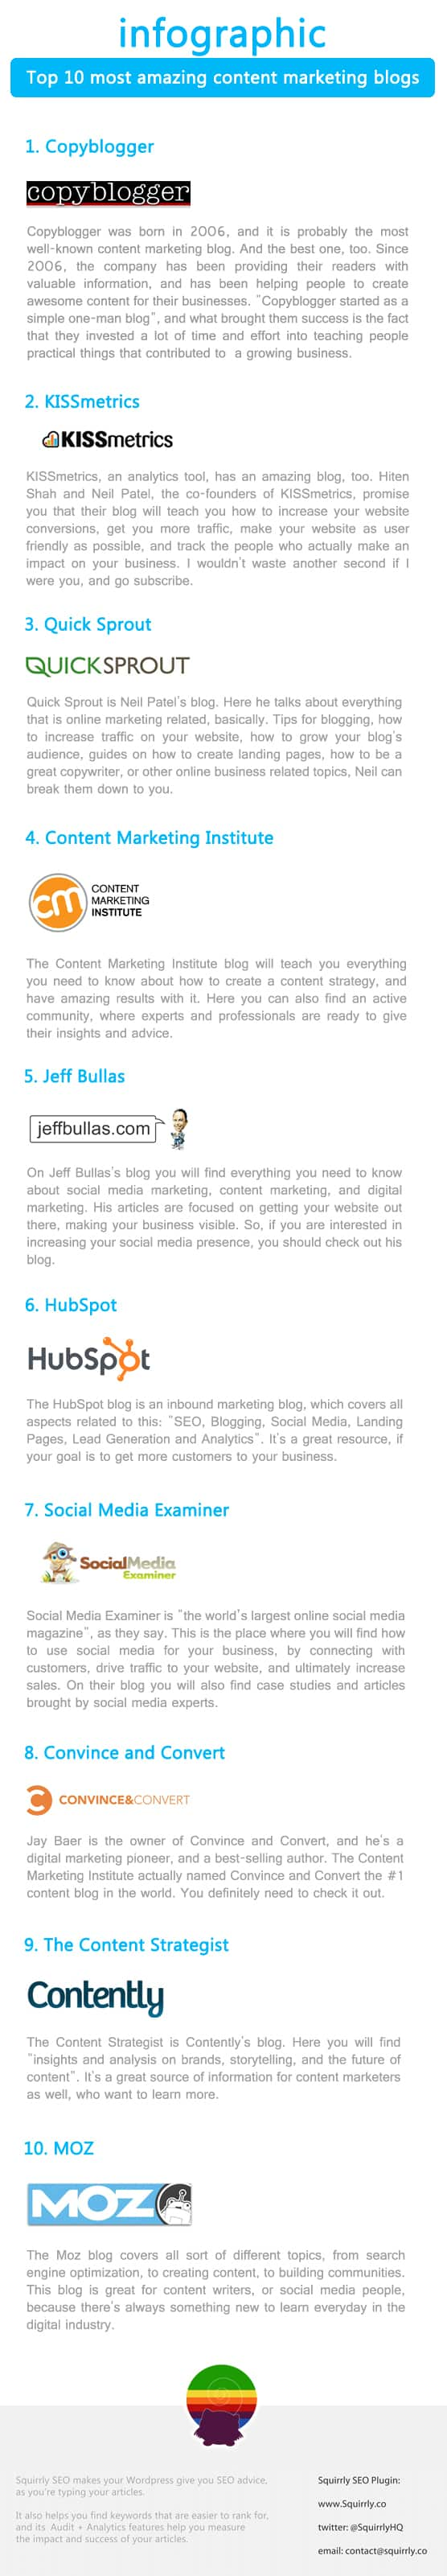 Top 10 most amazing content marketing blogs